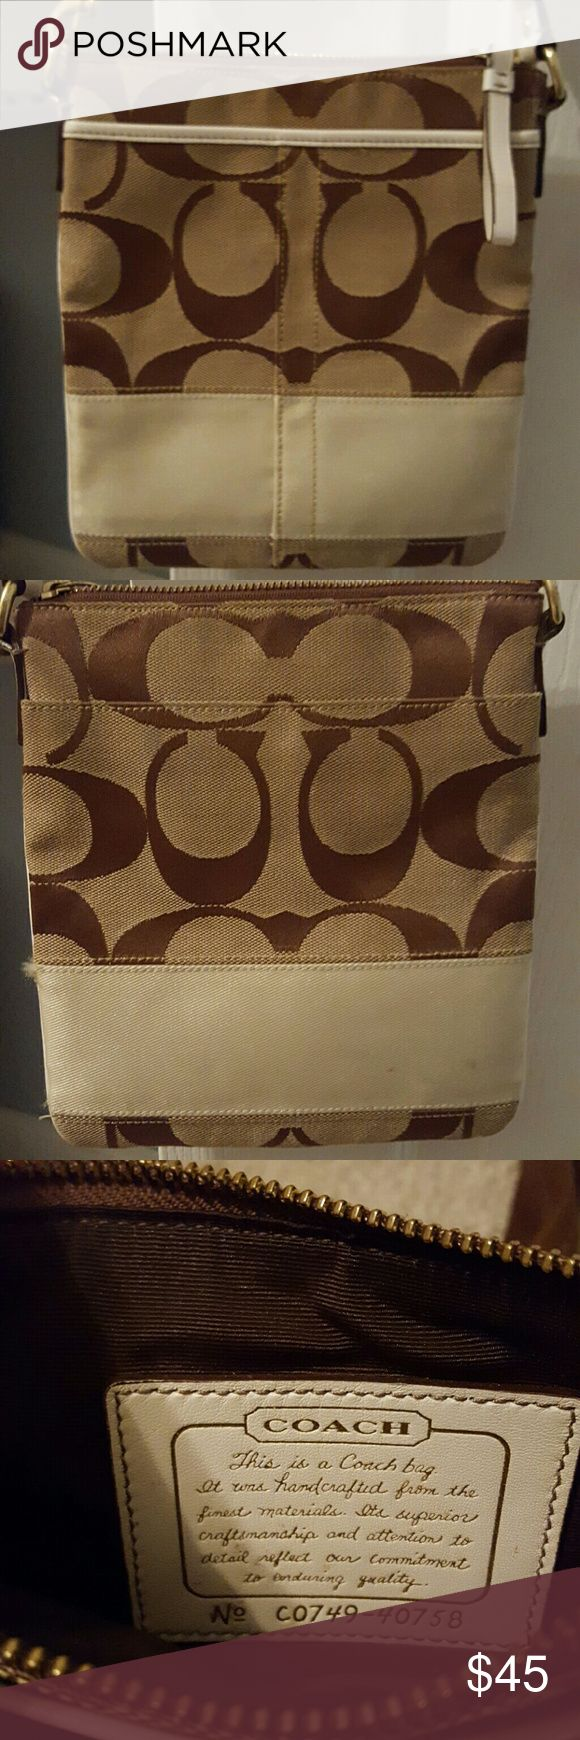 Coach swingpack bag Brown medium bag with two exterior pockets and a shoulder pad when you use the adjustable strap to make it a crossbody, or it can be worn on one shoulder, great for shopping and travelling. Coach Bags Crossbody Bags